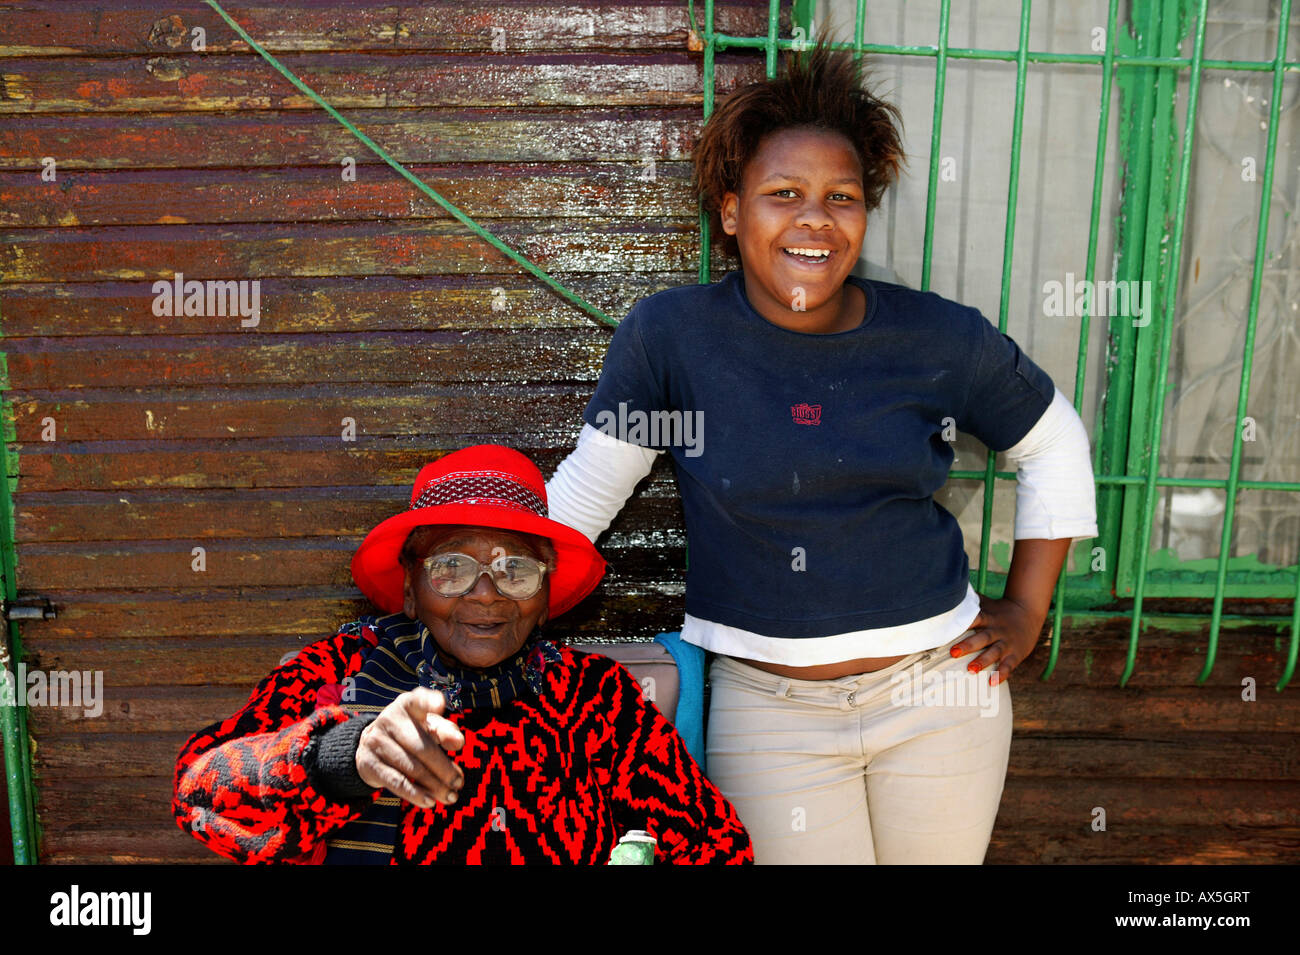 Elderly woman wearing glasses posing with her granddaughter, Capetown, South Africa, Africa - Stock Image